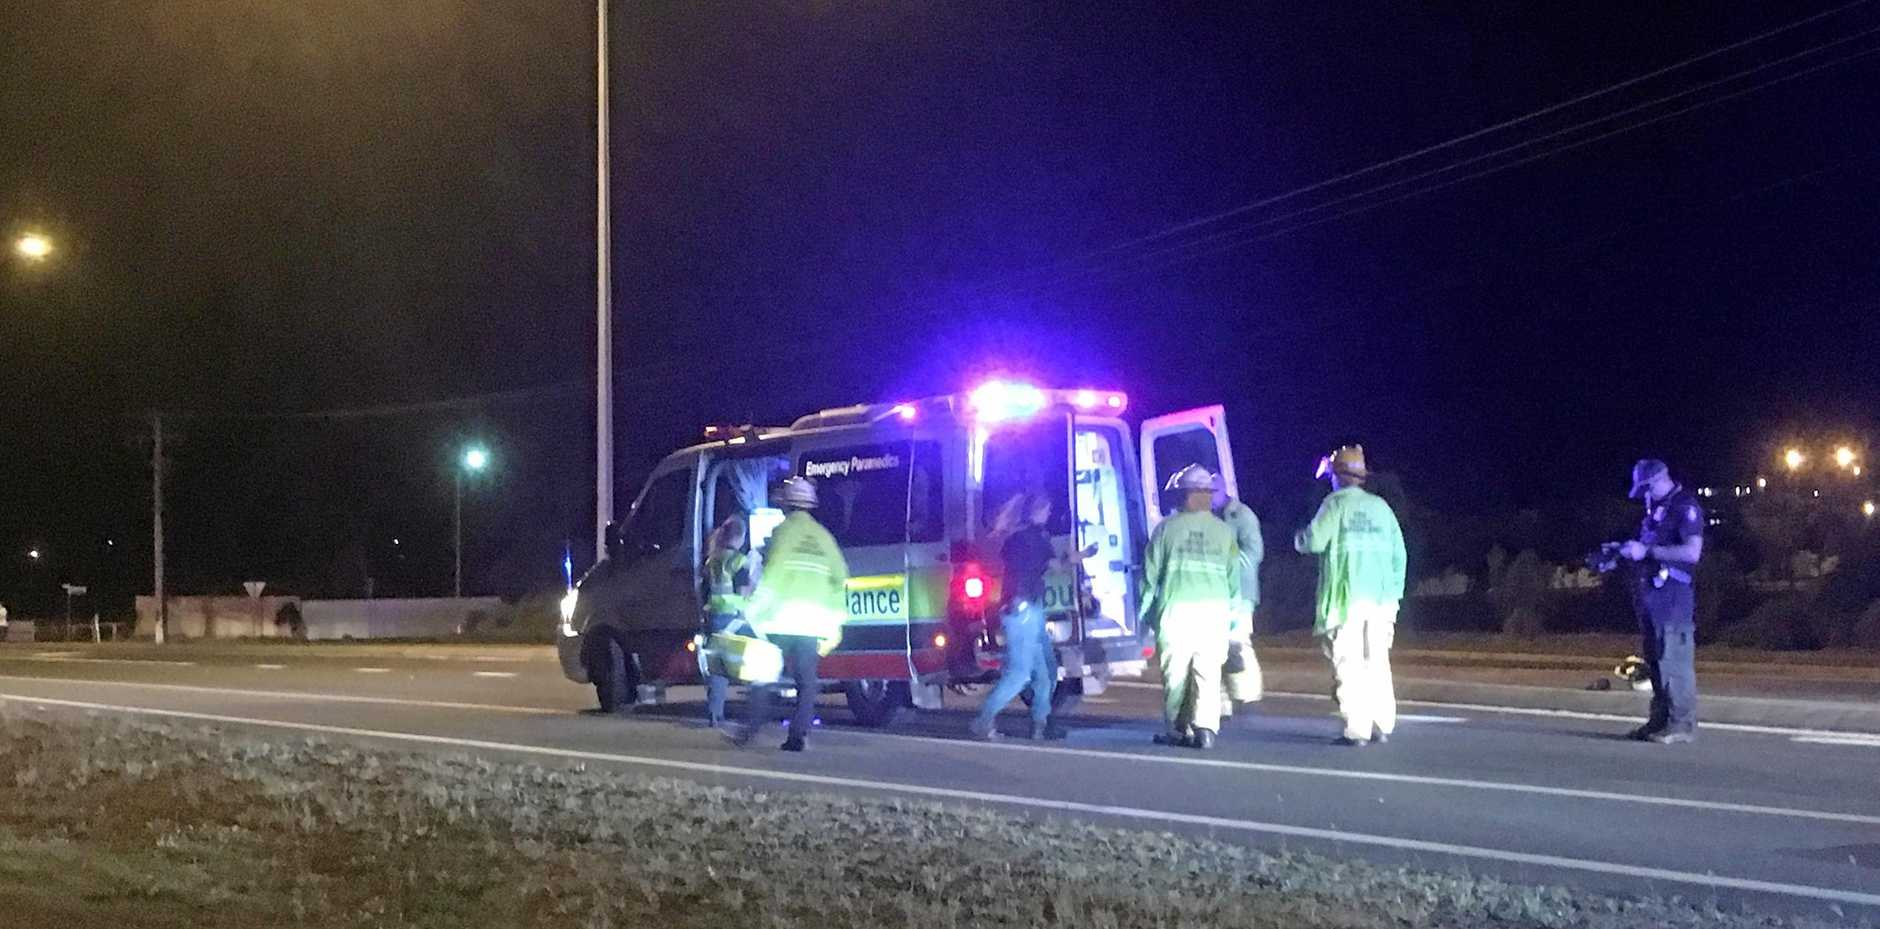 Emergency services personnel place an injured motorbike rider in an ambulance for transportation to Rockhampton Hospital on Sunday night.